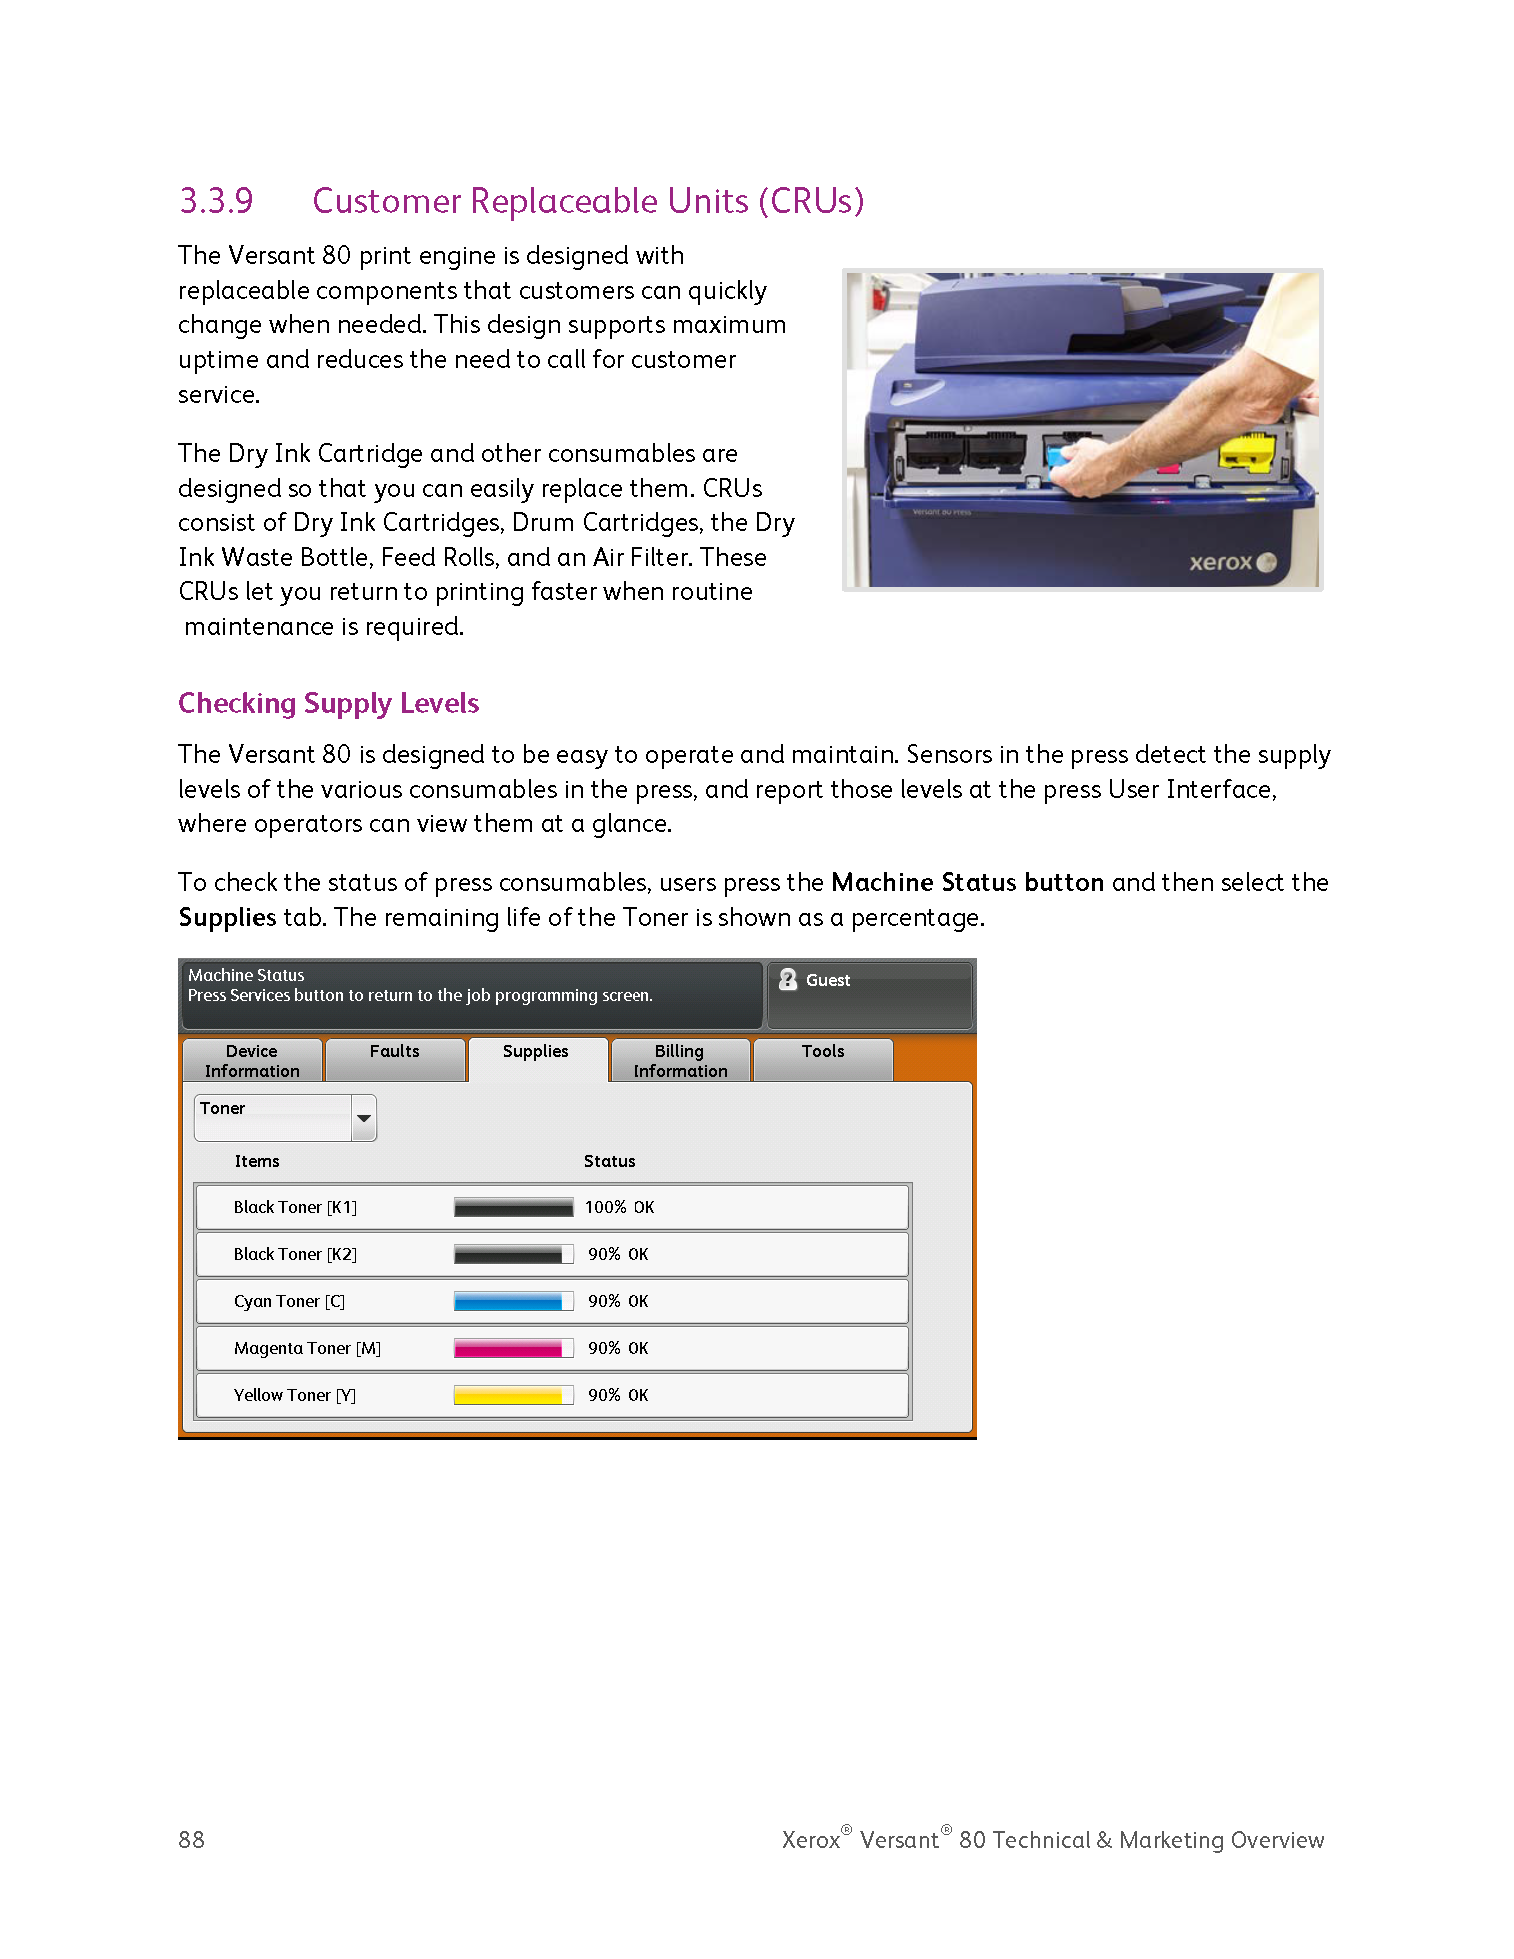 Versant 80 TMO Final_12.18.14.Optimized_Page_096.png